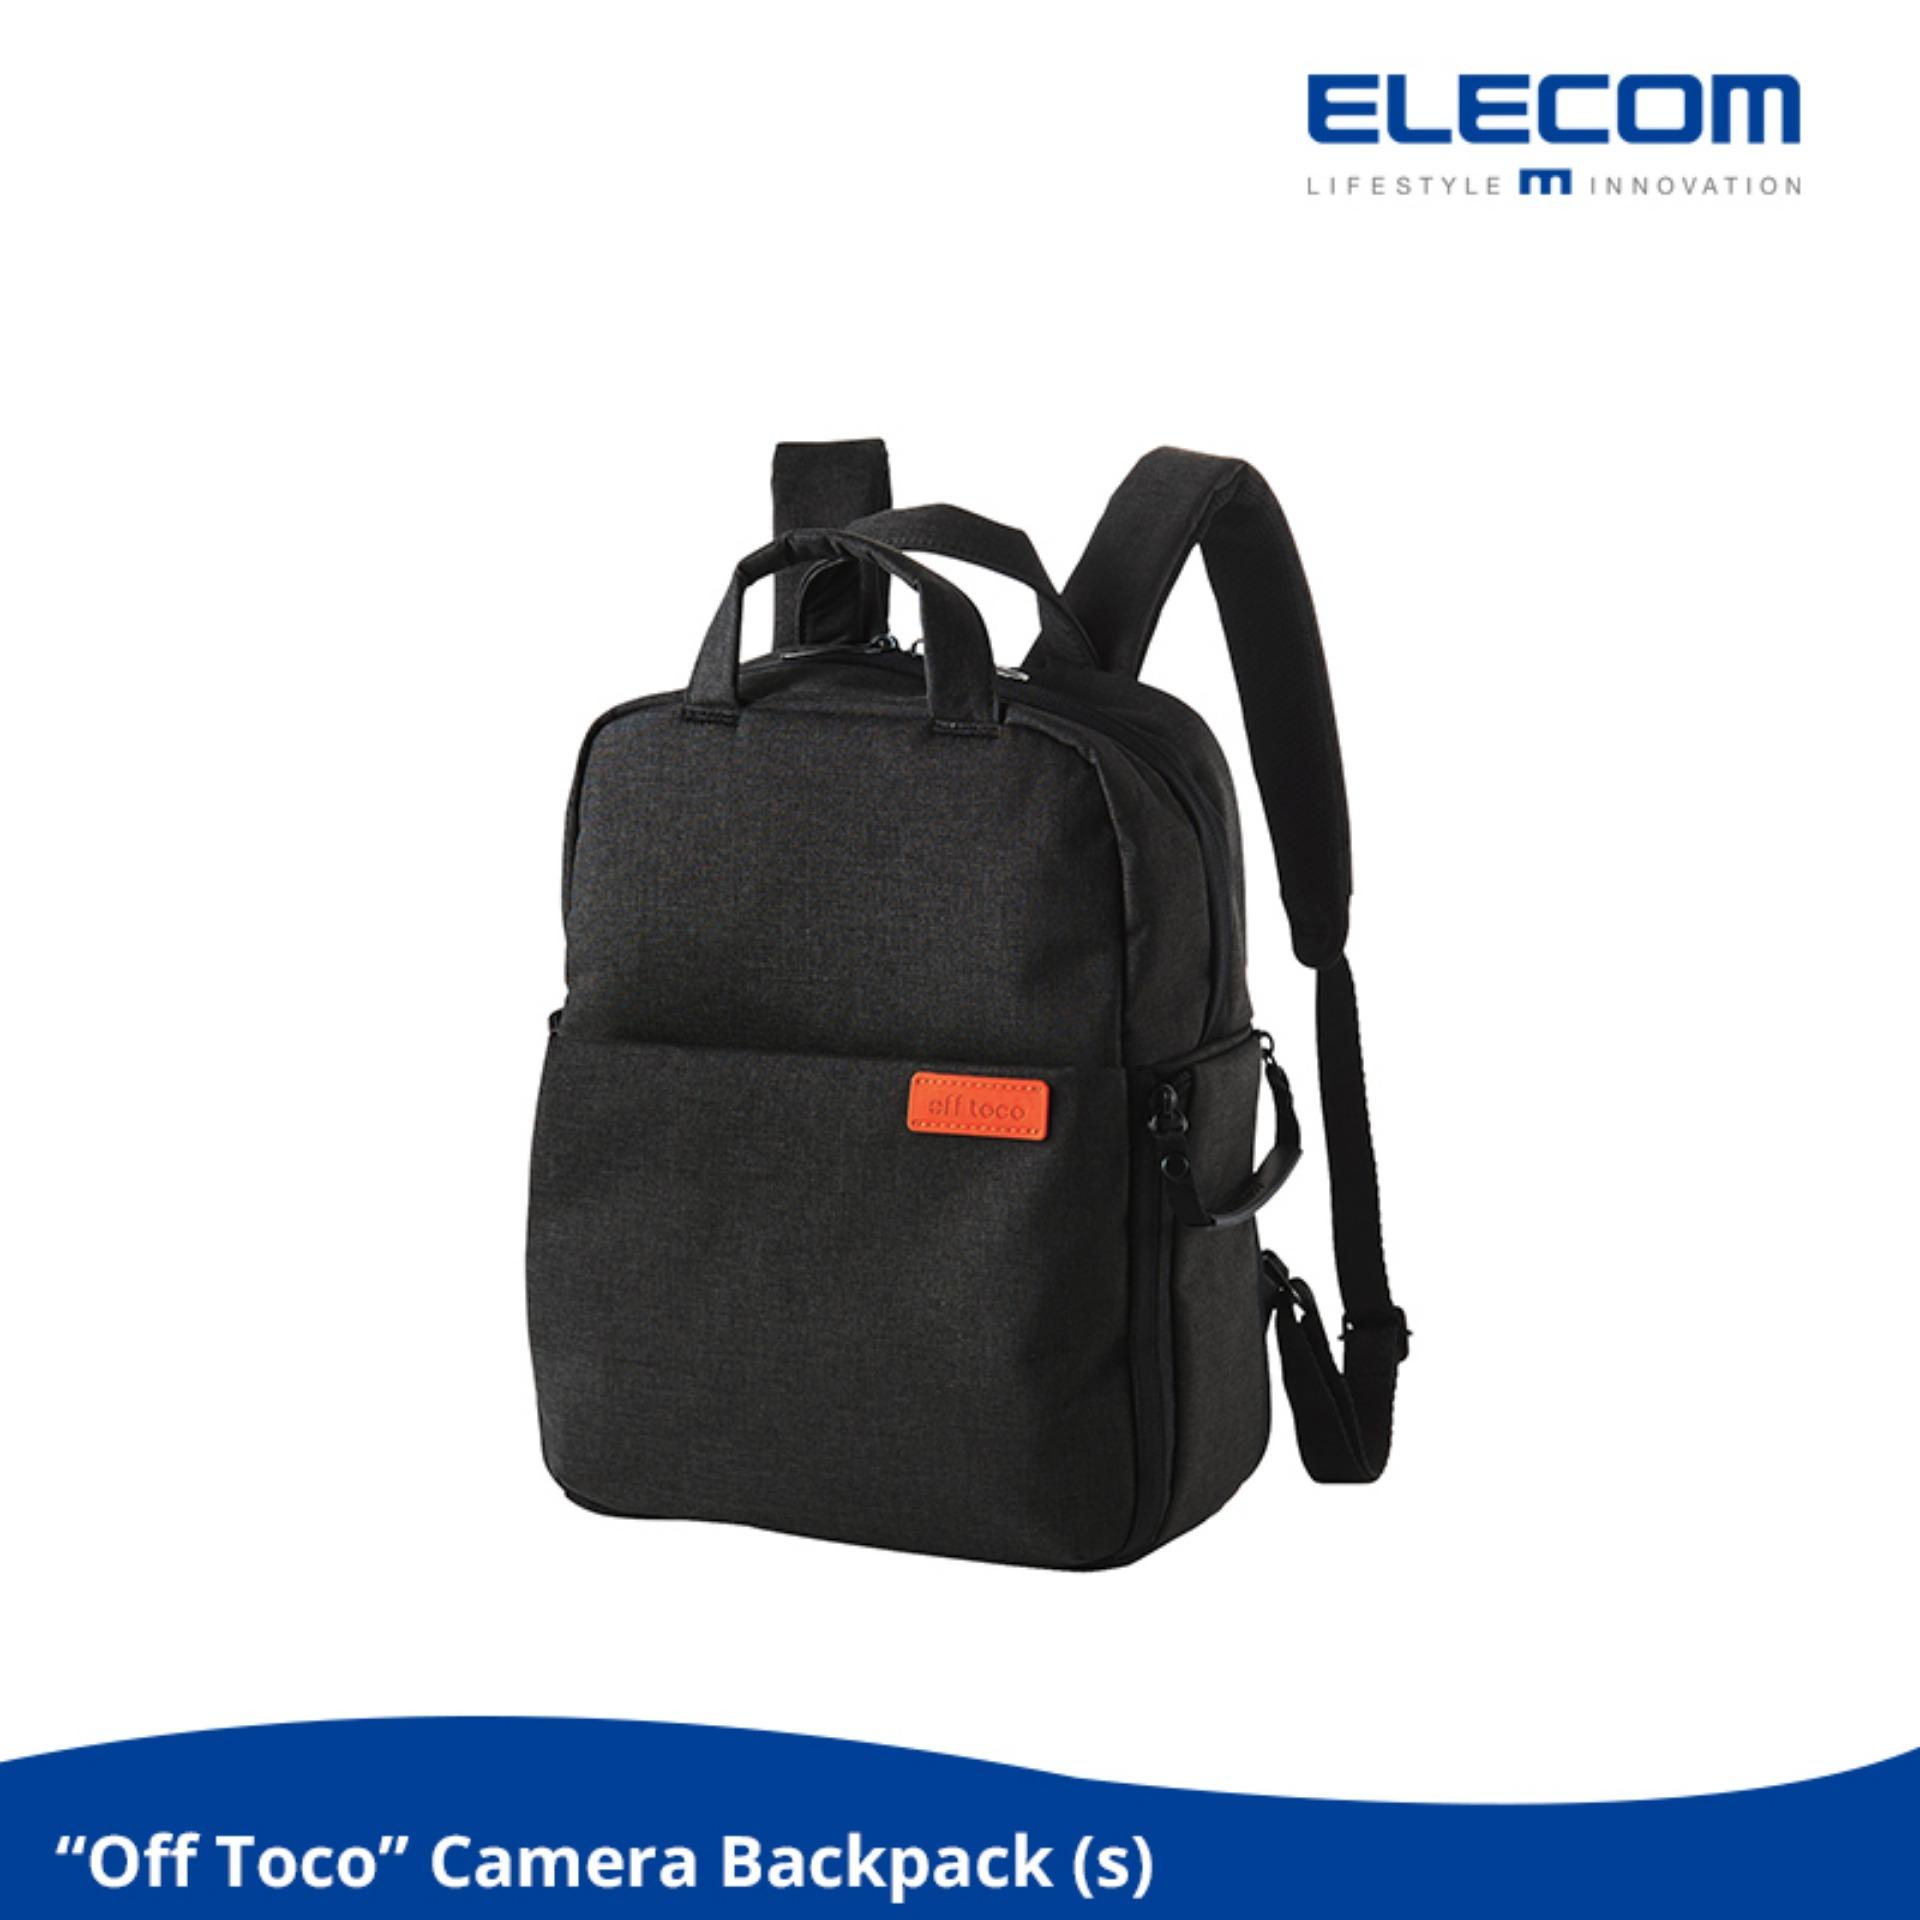 Price Elecom Off Toco 2 Style Camera Backpack S Size Travel Kids Bag Sch**l Bag Water Resistance Dslr Photography Video Nikon Sony Canon Singapore